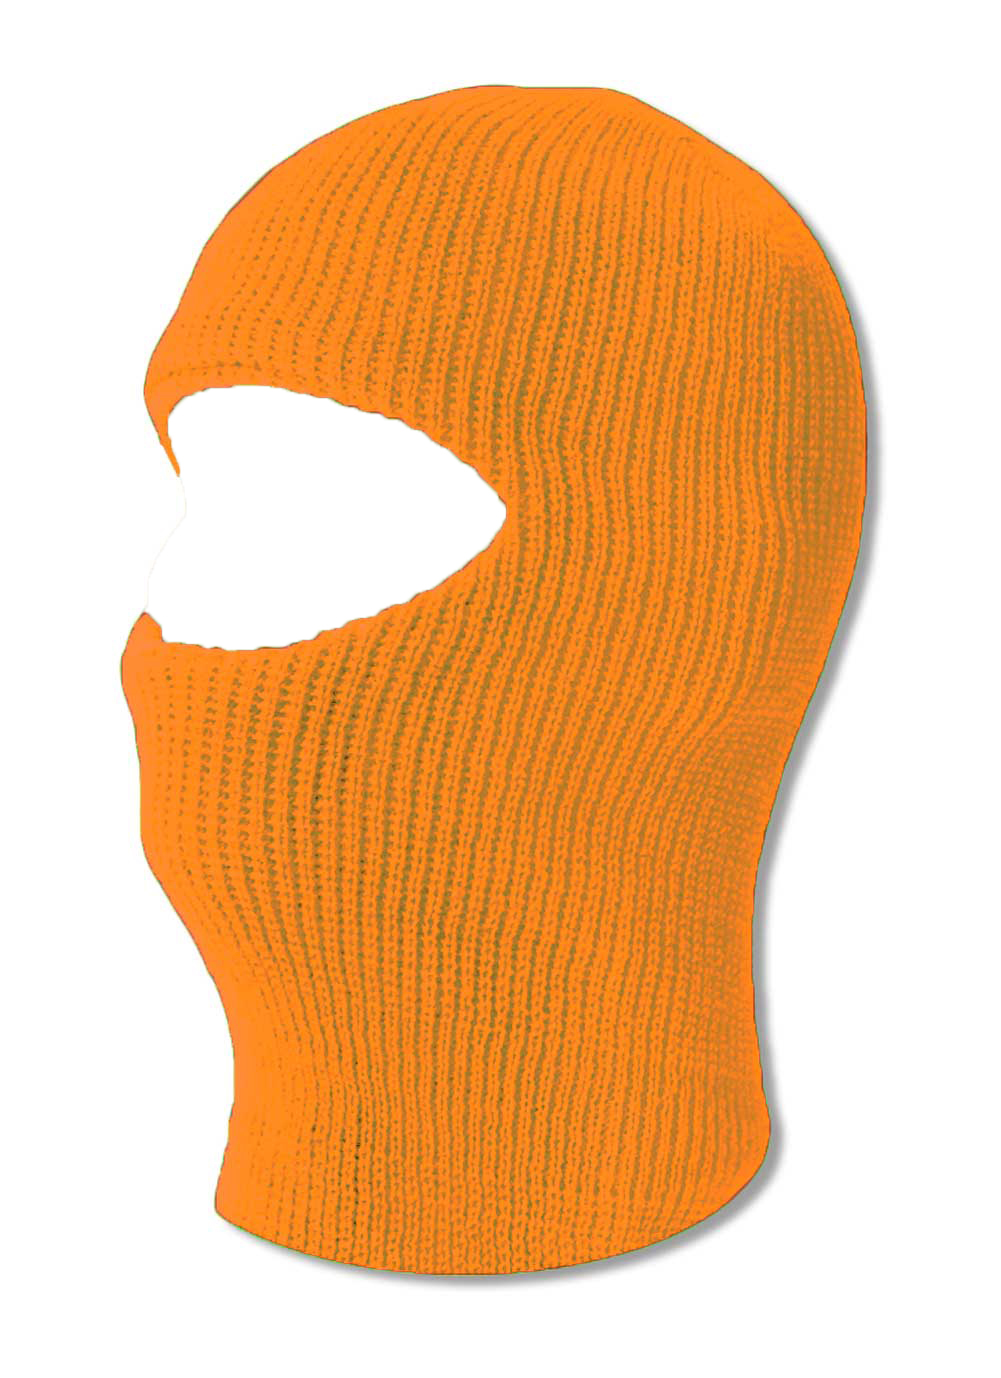 TopHeadwear One 1 Hole Ski Mask Neon Orange by